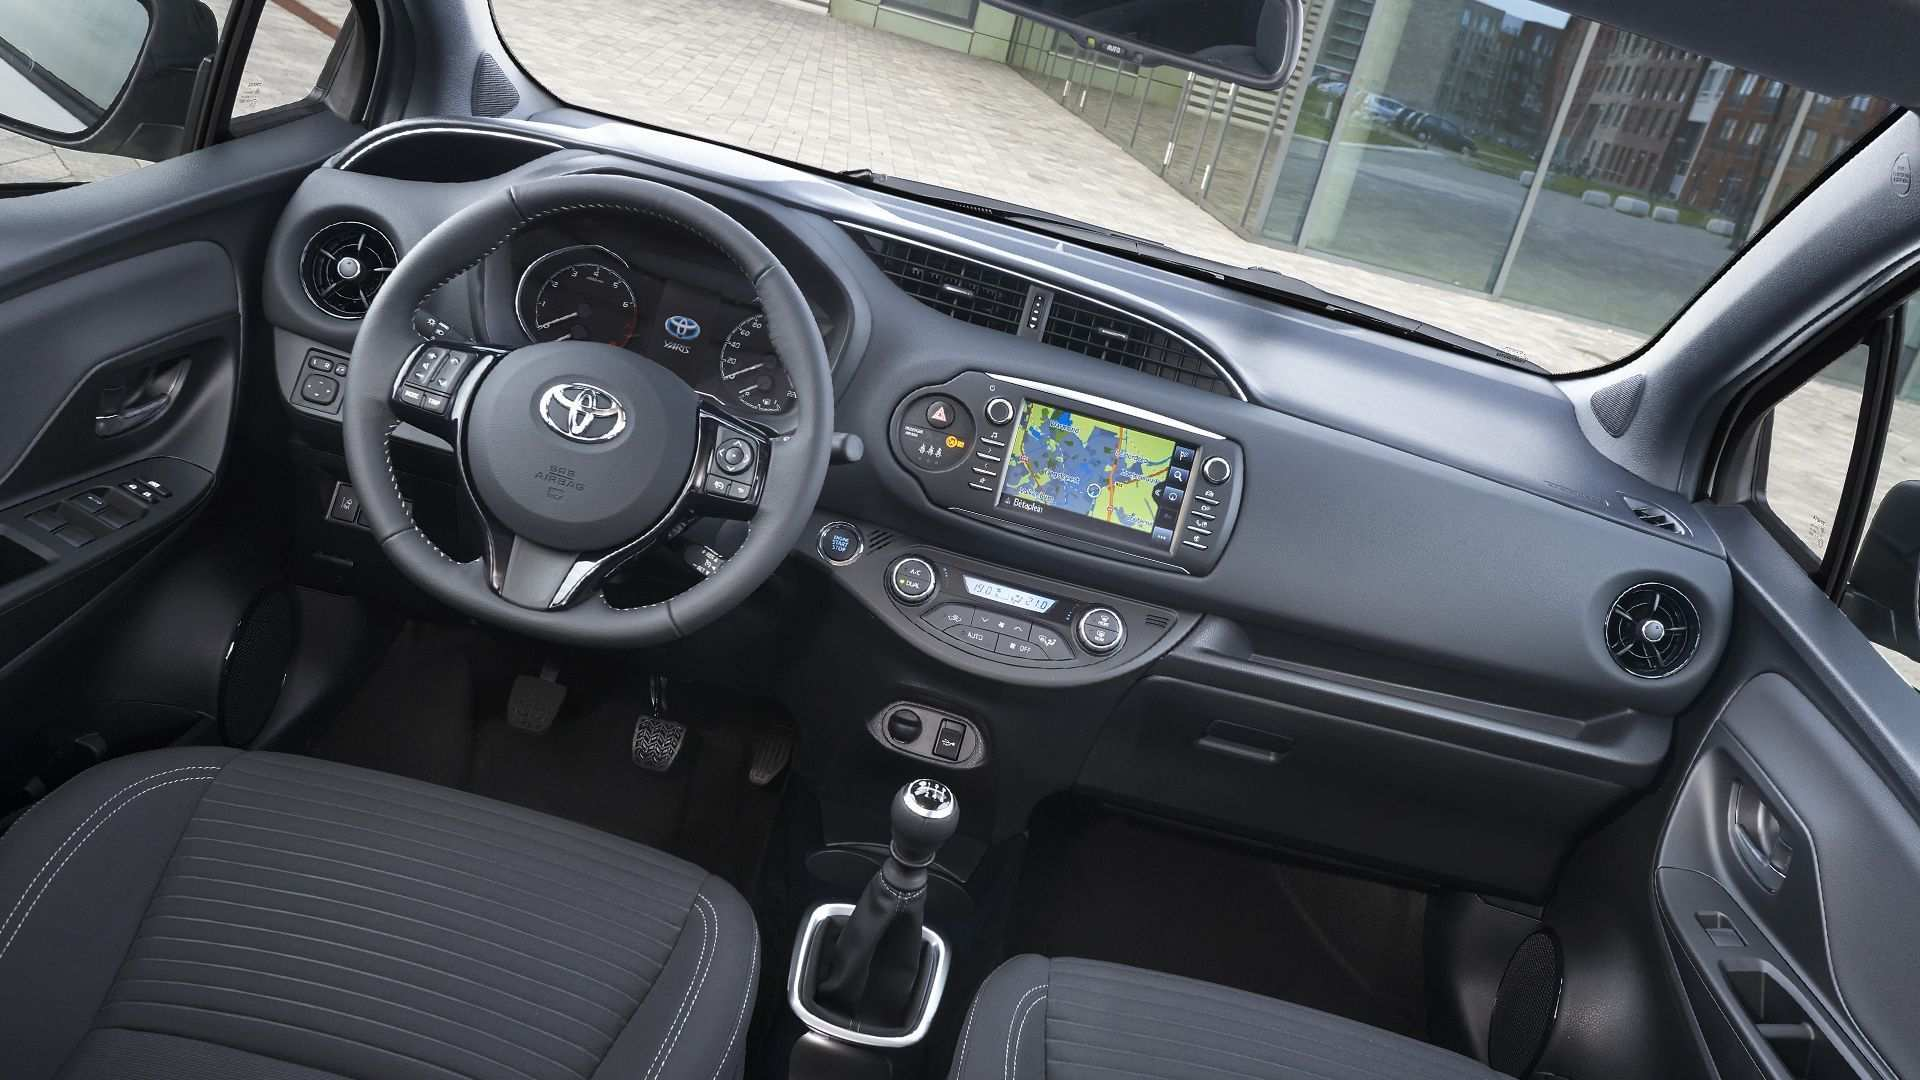 43 All New Toyota Yaris 2019 Interior History